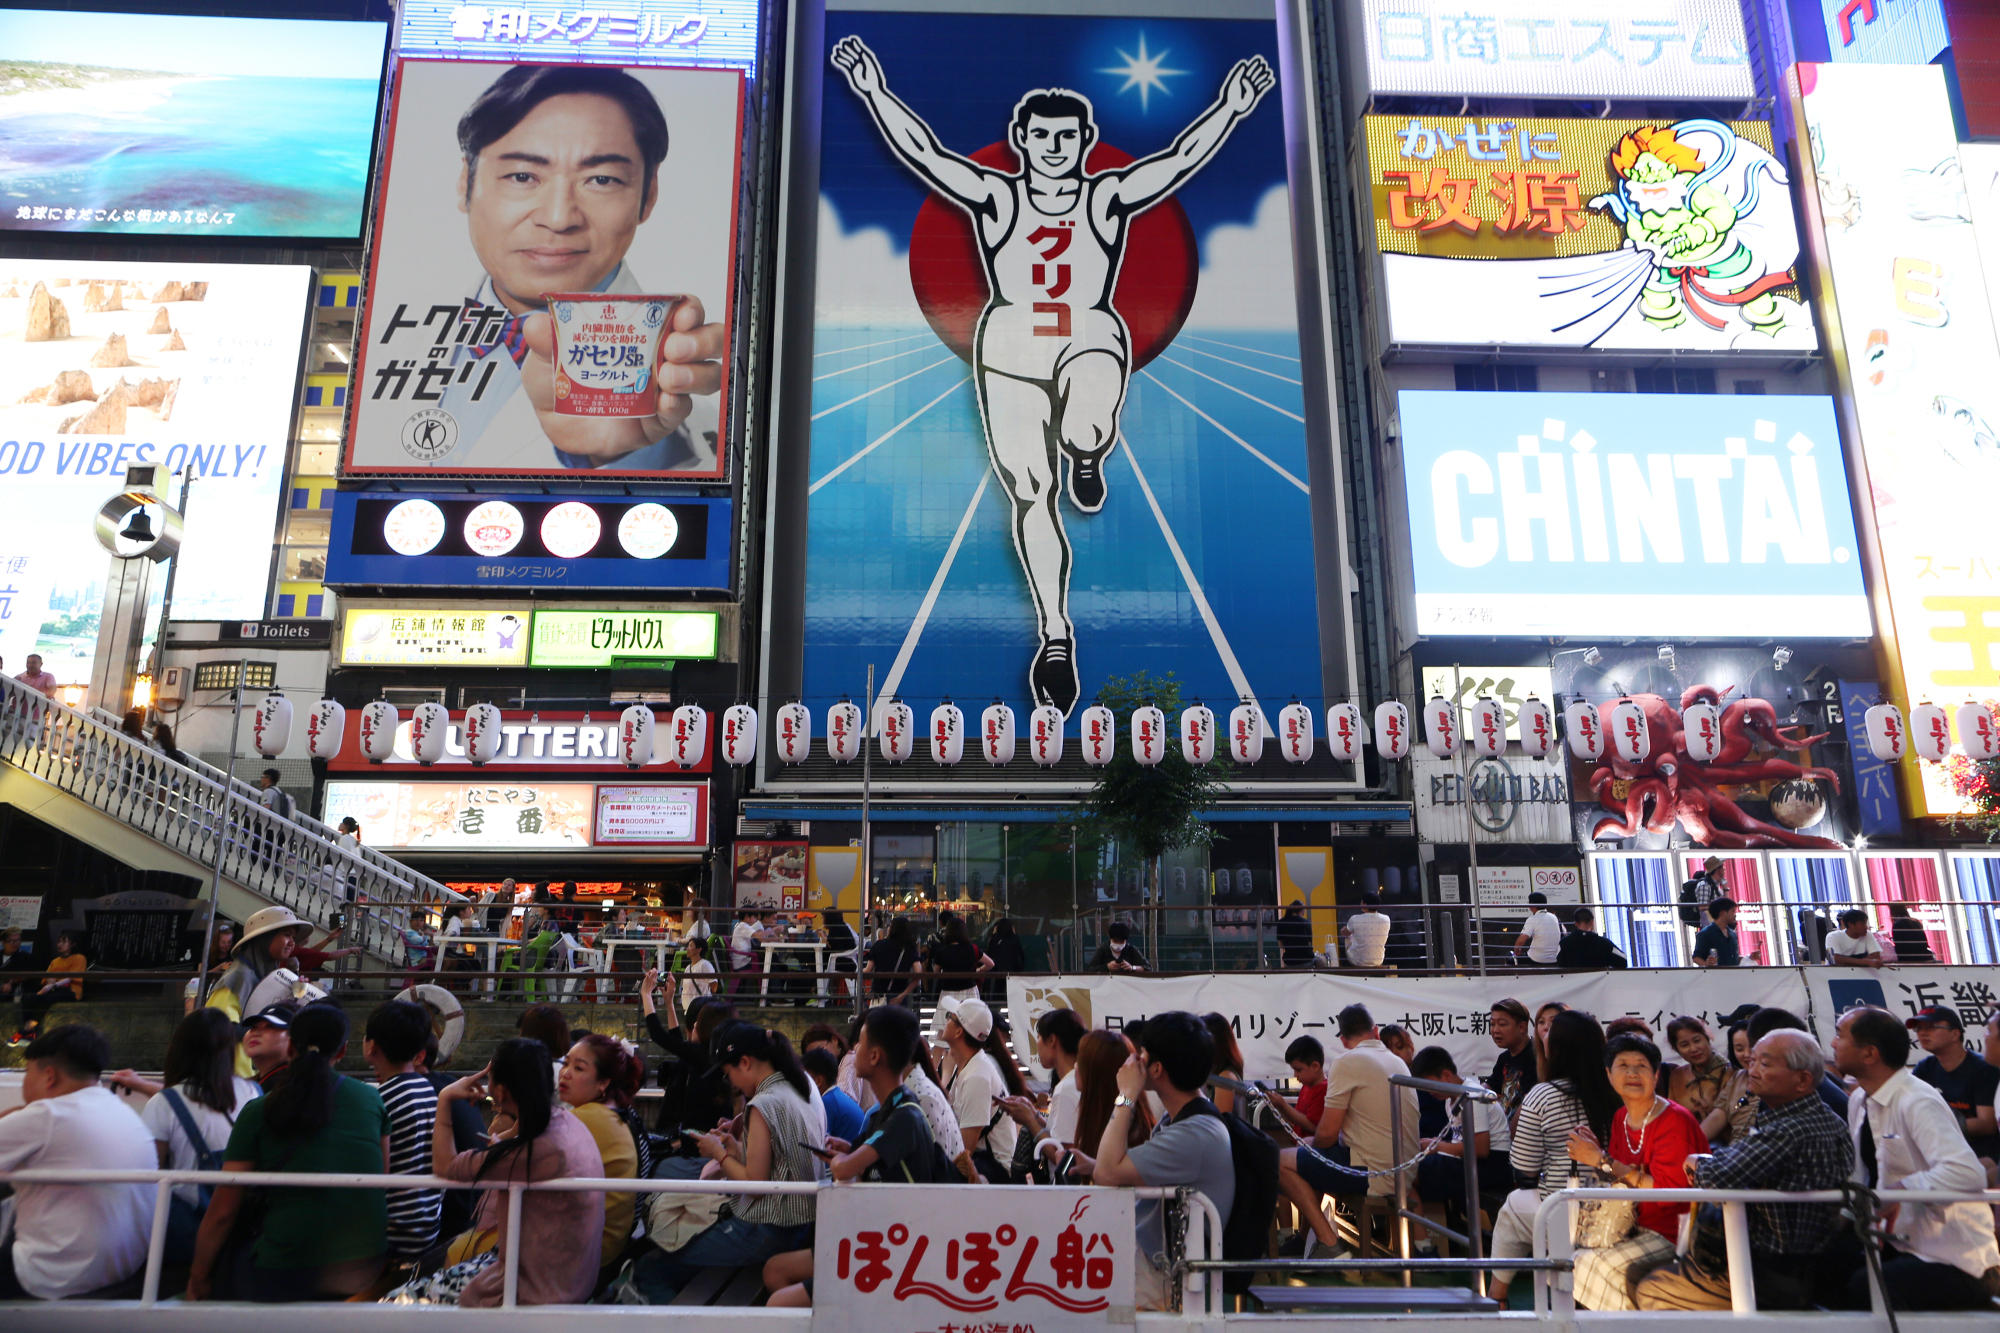 People walk around the Dotonbori downtown area of Osaka last month. Japan saw a record 16.63 million overseas visitors in the first six months of this year, according to government data released Wednesday. | BLOOMBERG